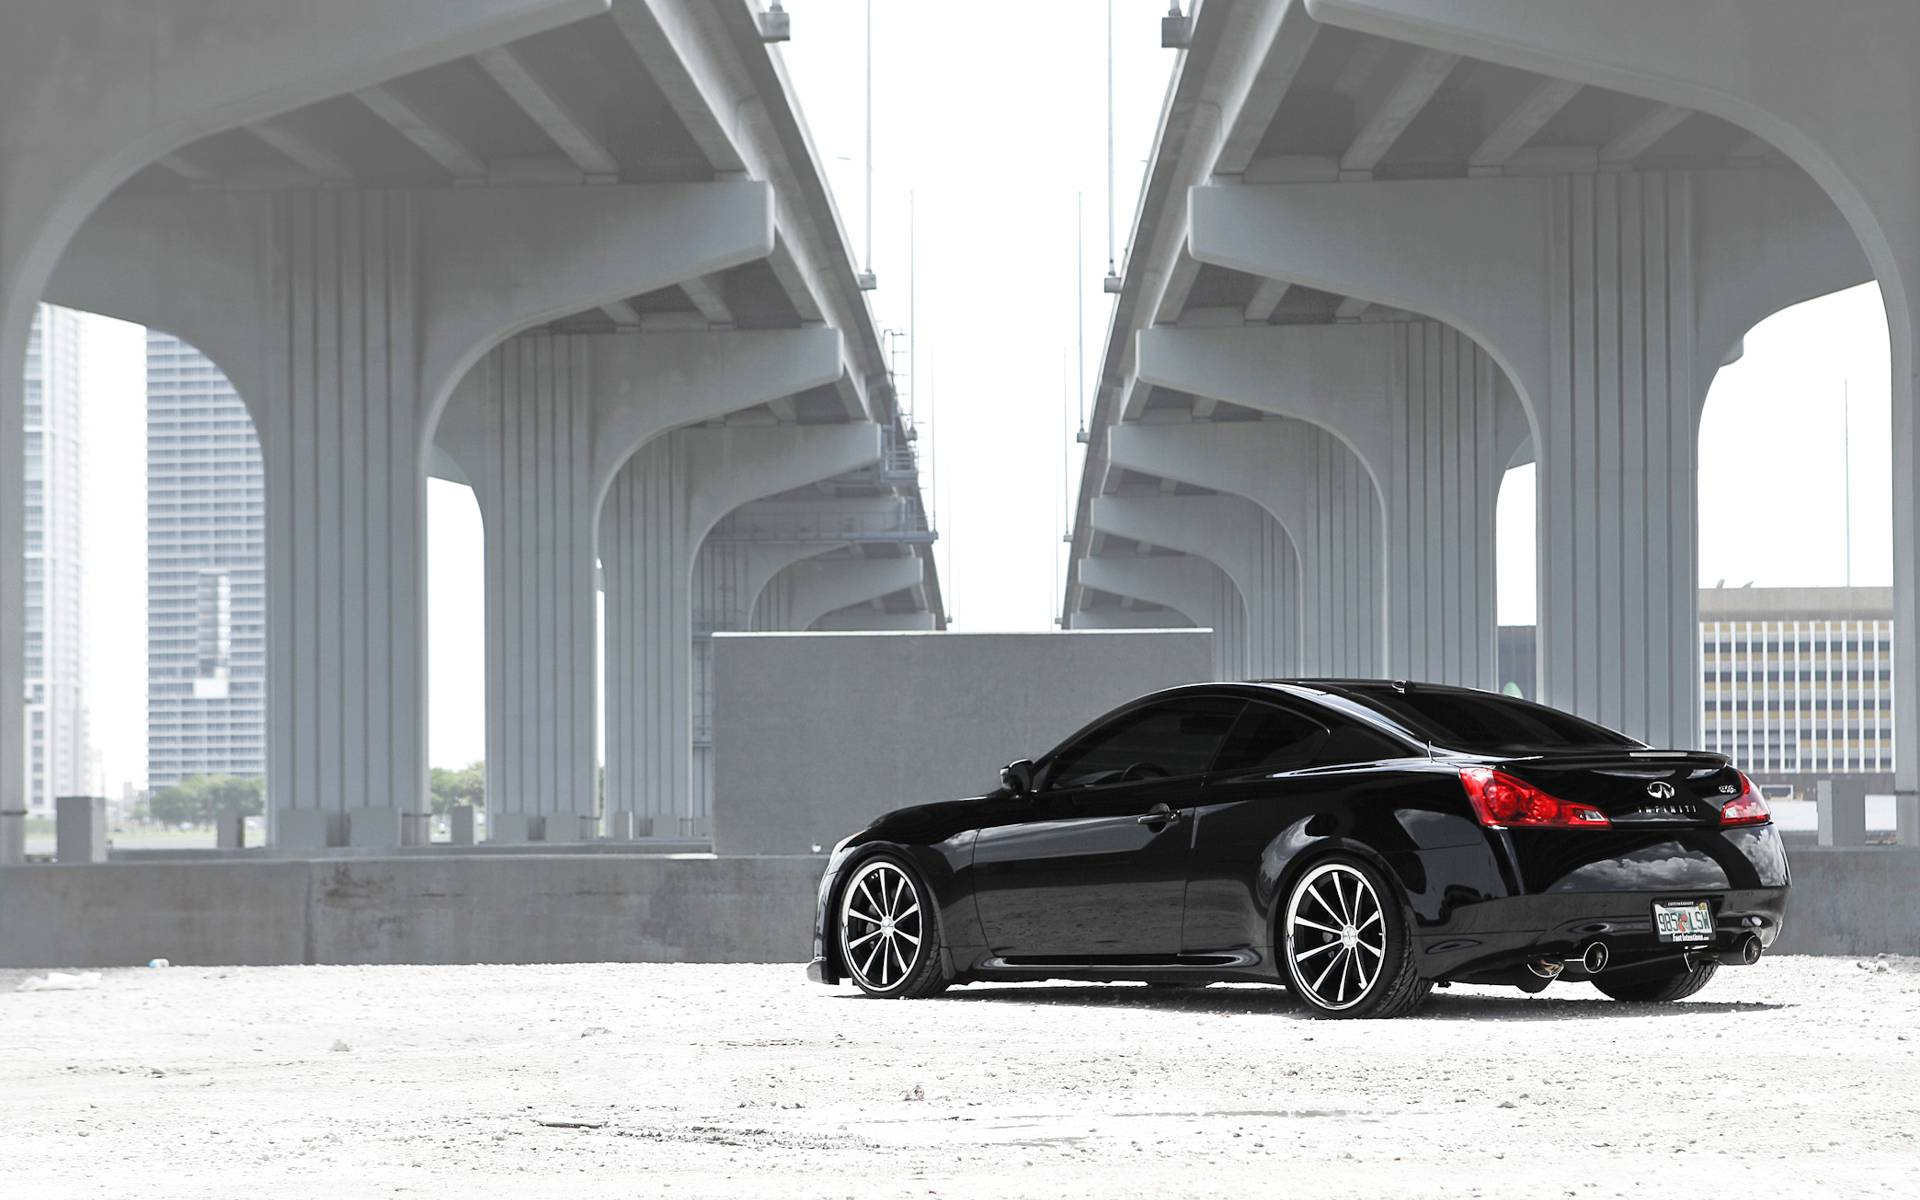 <b>G37 Wallpapers</b> - WallpaperSafari